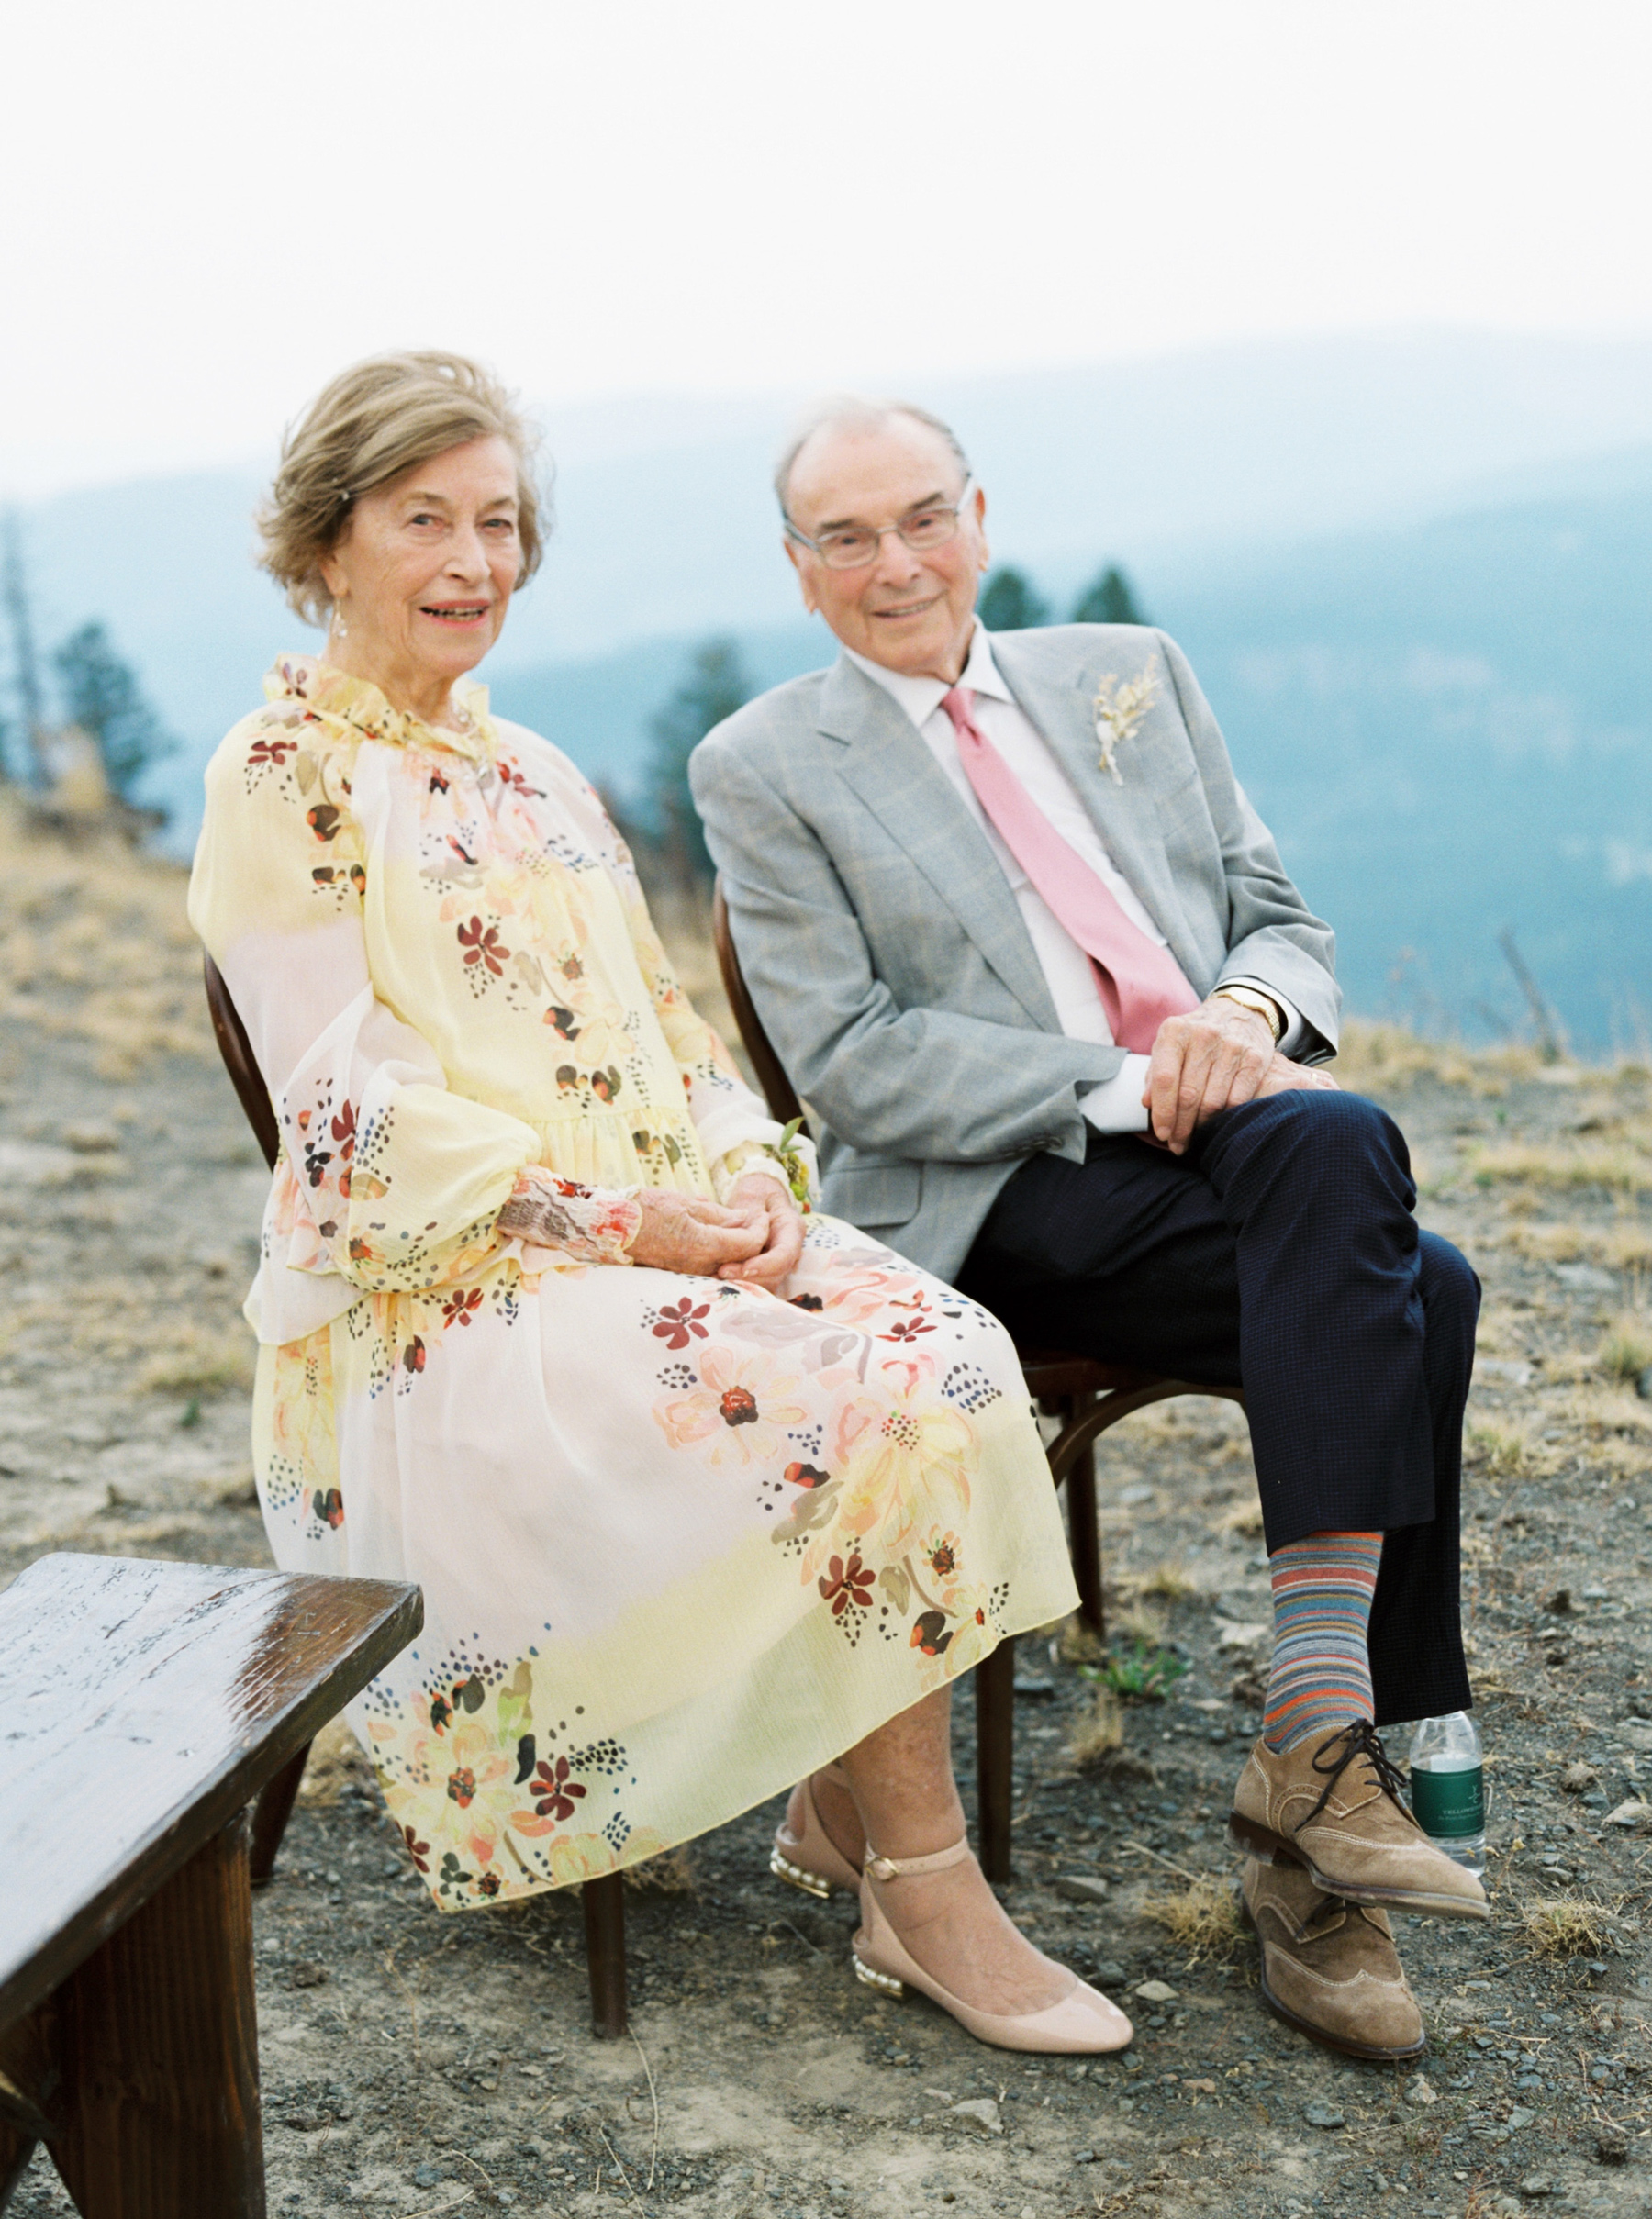 bride's grandparents sitting on wooden chairs